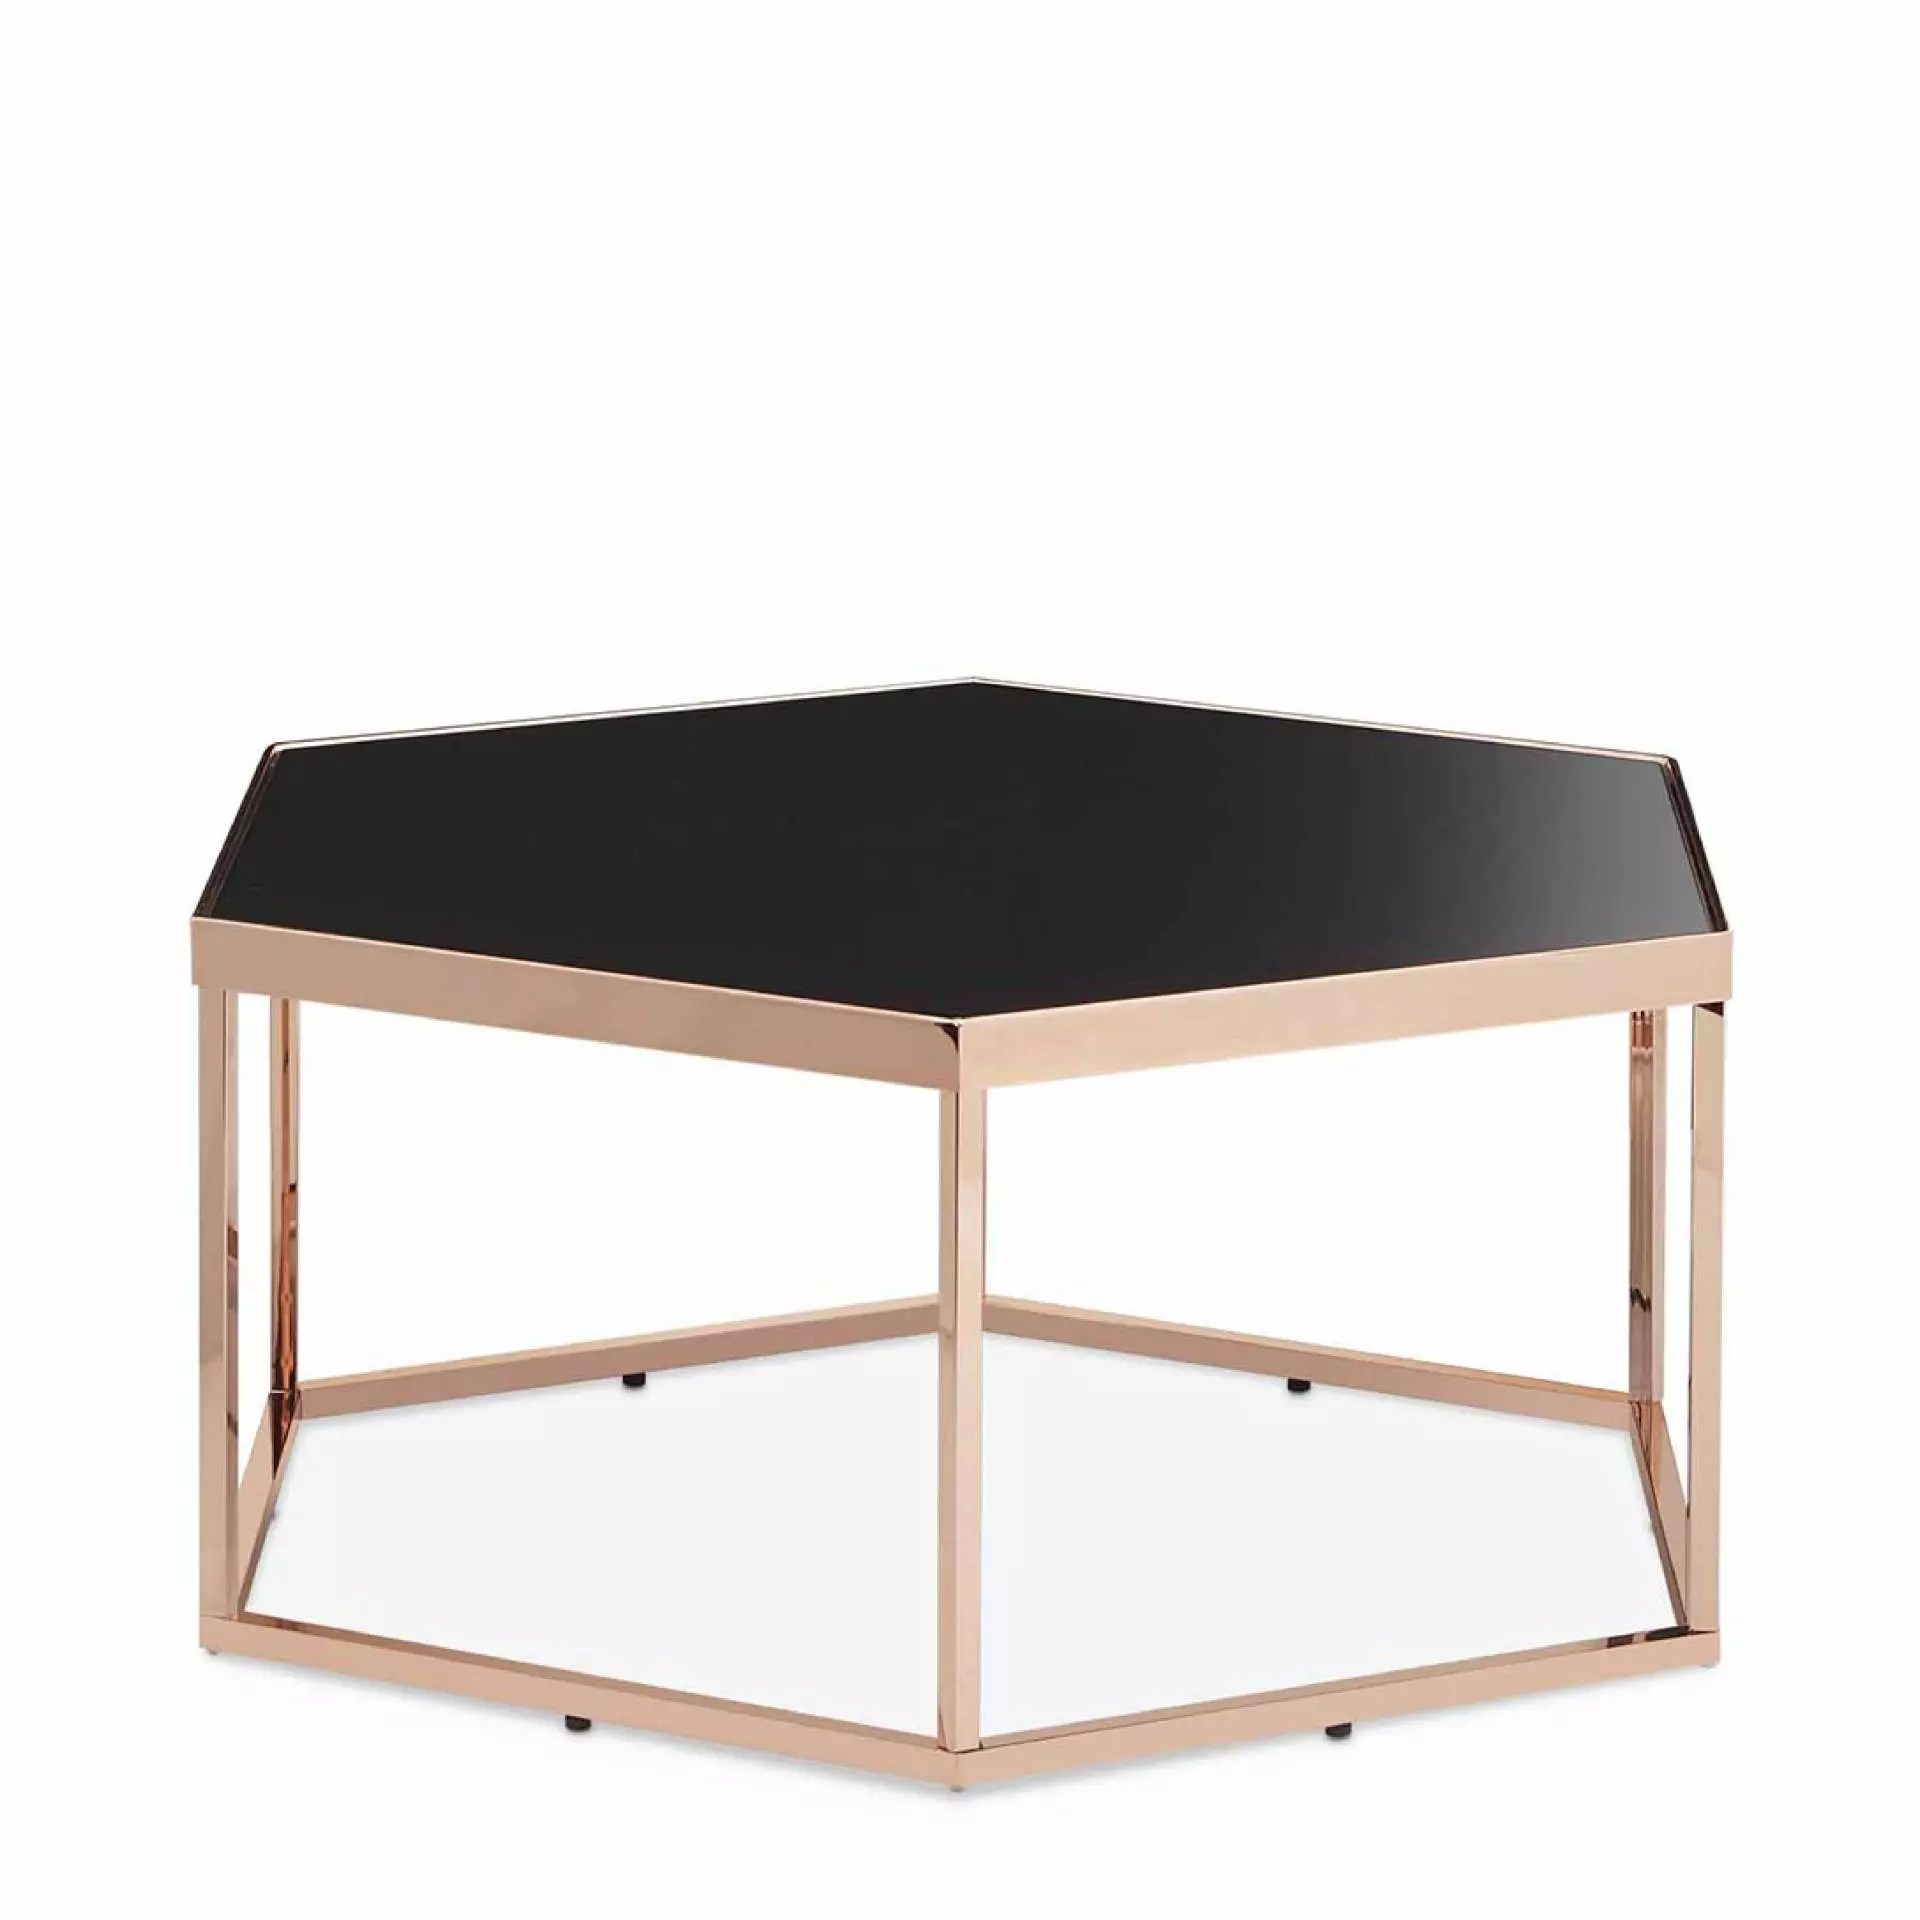 Hexagonal Black Glass Coffee Table Research Development Production Slicethinner